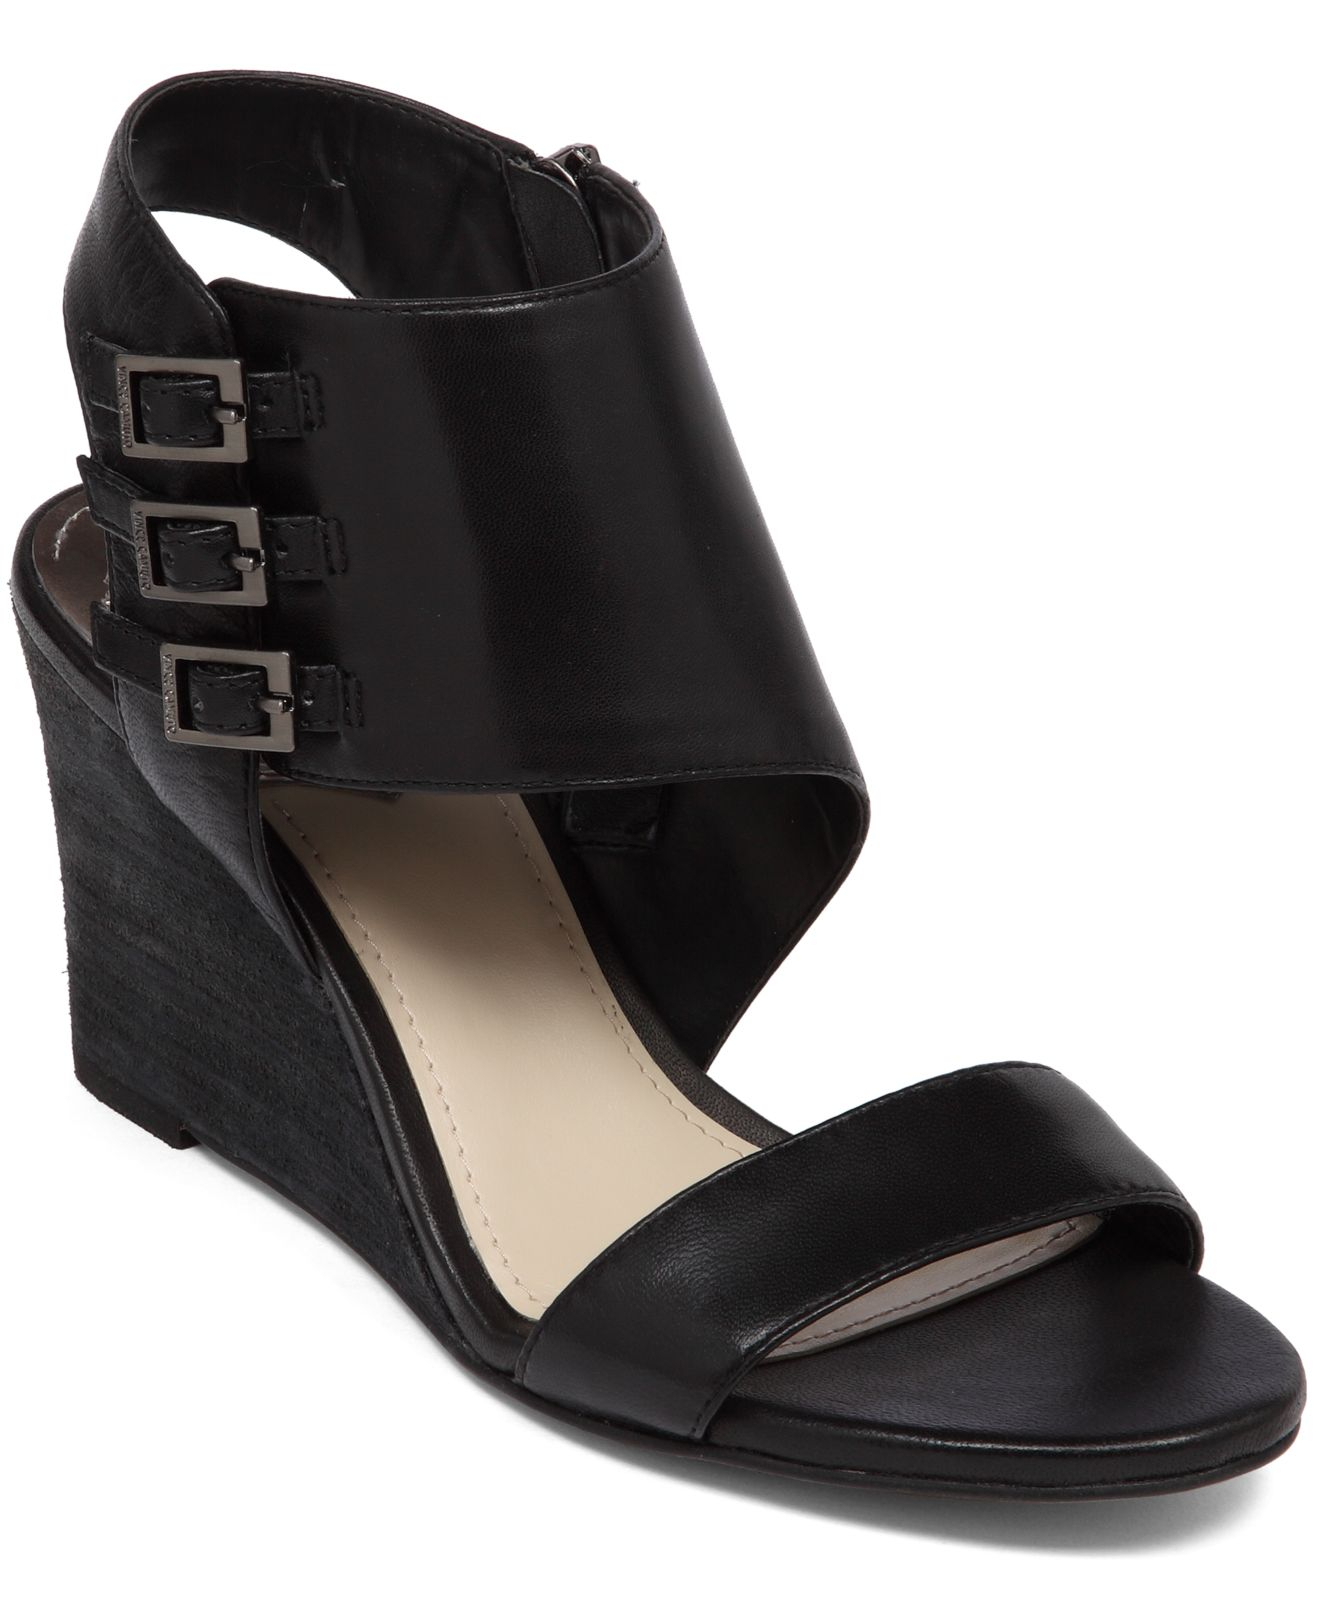 Vince Camuto Lyssia Wedge Sandals In Black Lyst